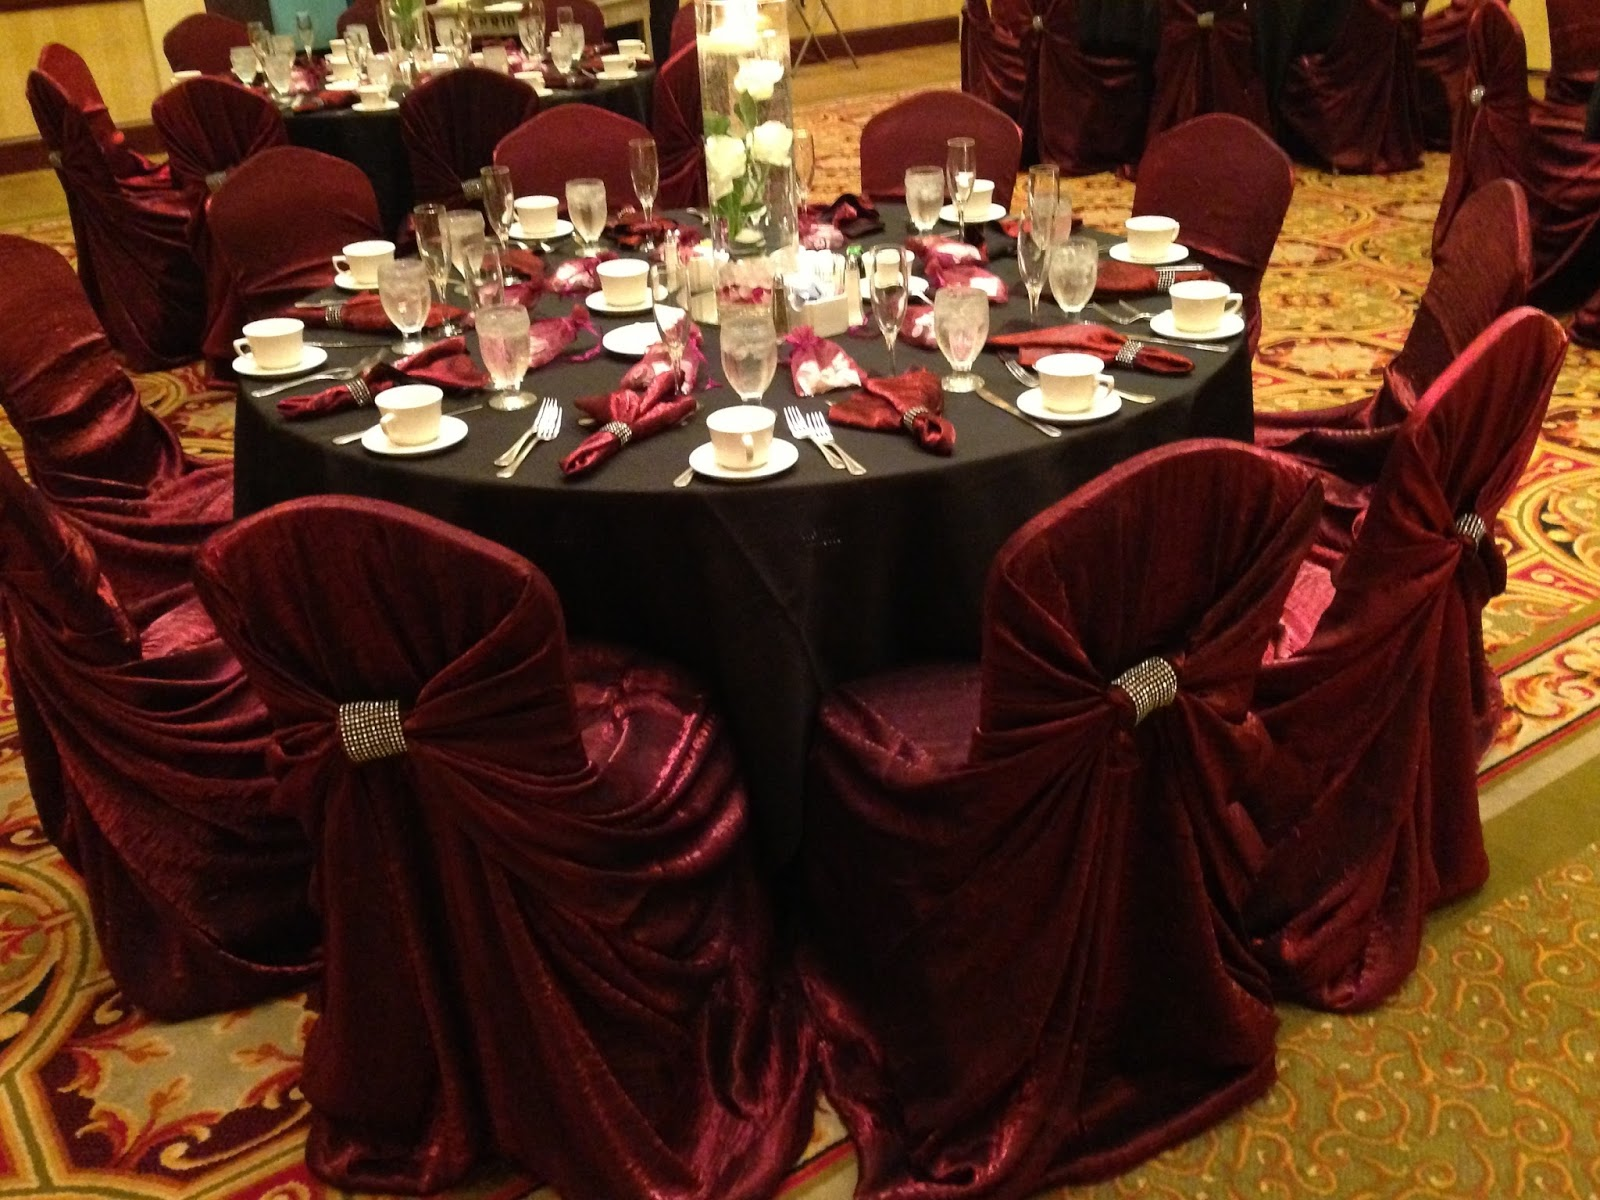 Burgundy Chair Covers Wedding Black Wire Phoenix Marriott Mesa Rachel And Tyler S They Decorated With Elegant Floral Water Centerpieces Congratulations